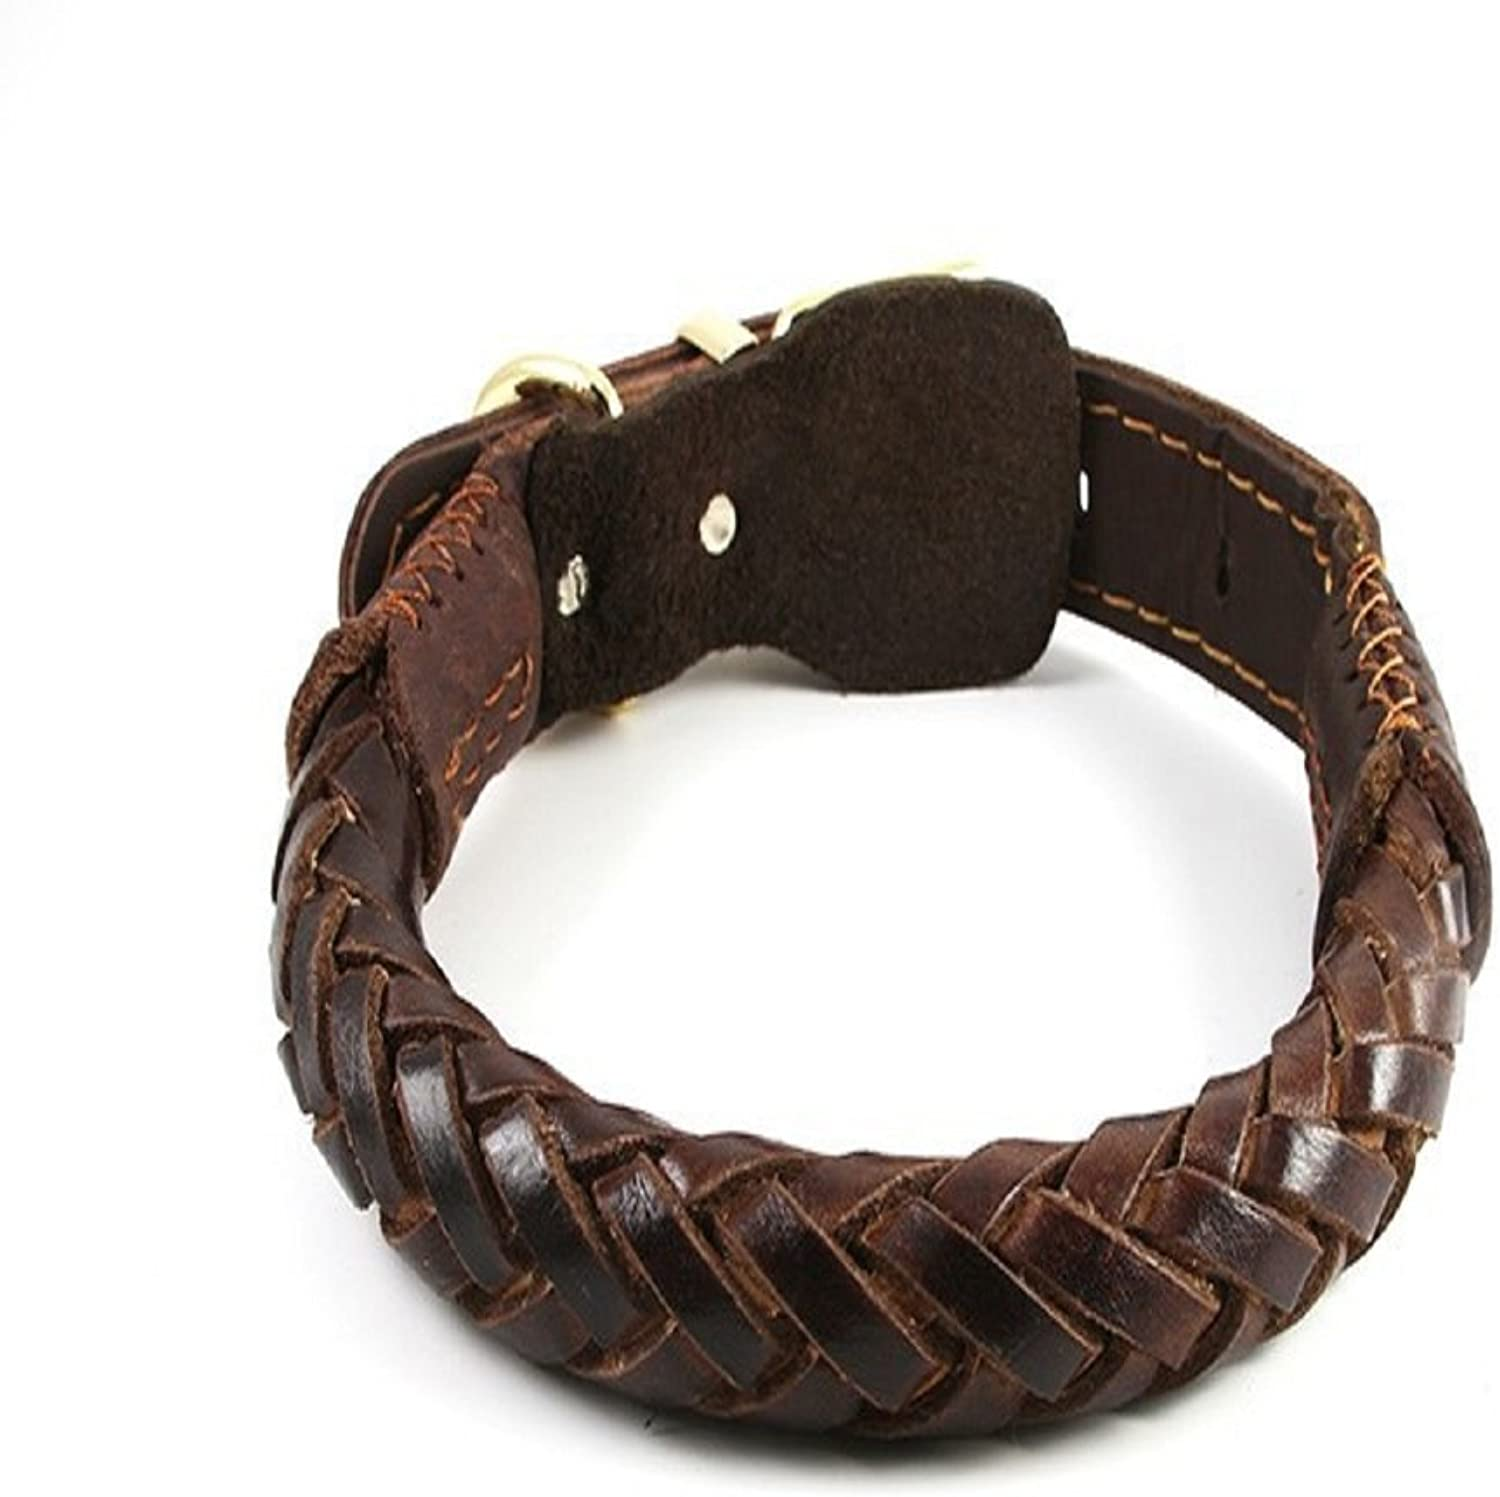 Jpettie Heavy Duty Real Leather Dog Collar Hand Made Pet Training Collar for Medium and Large Dogs (Dark Brown)